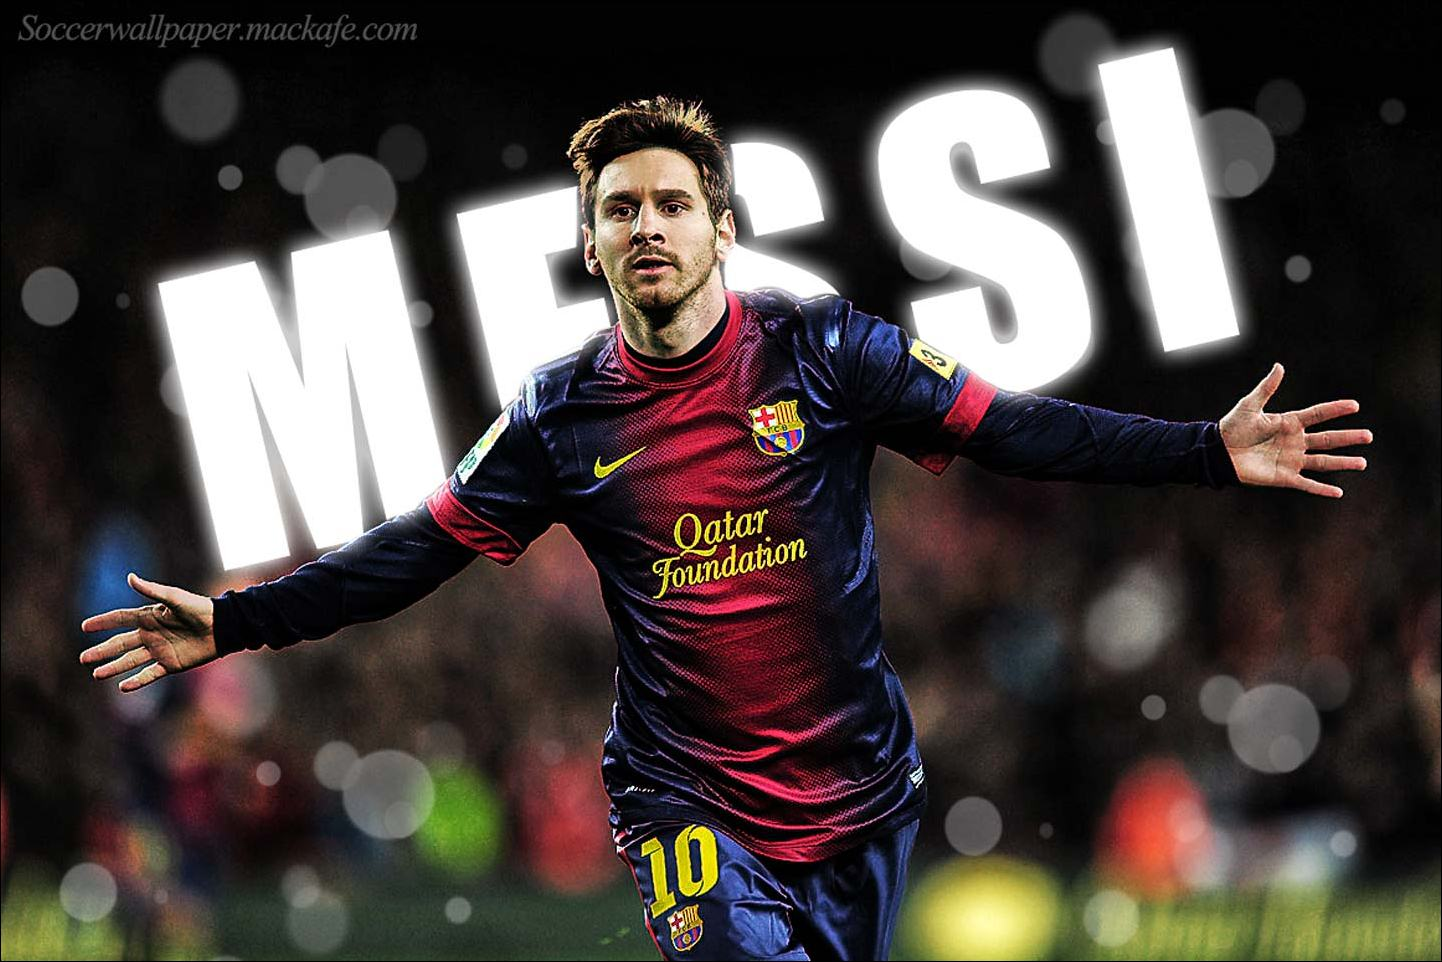 Wallpapers Messi 2014 Seleccion Argentina Barcelona Zoedev